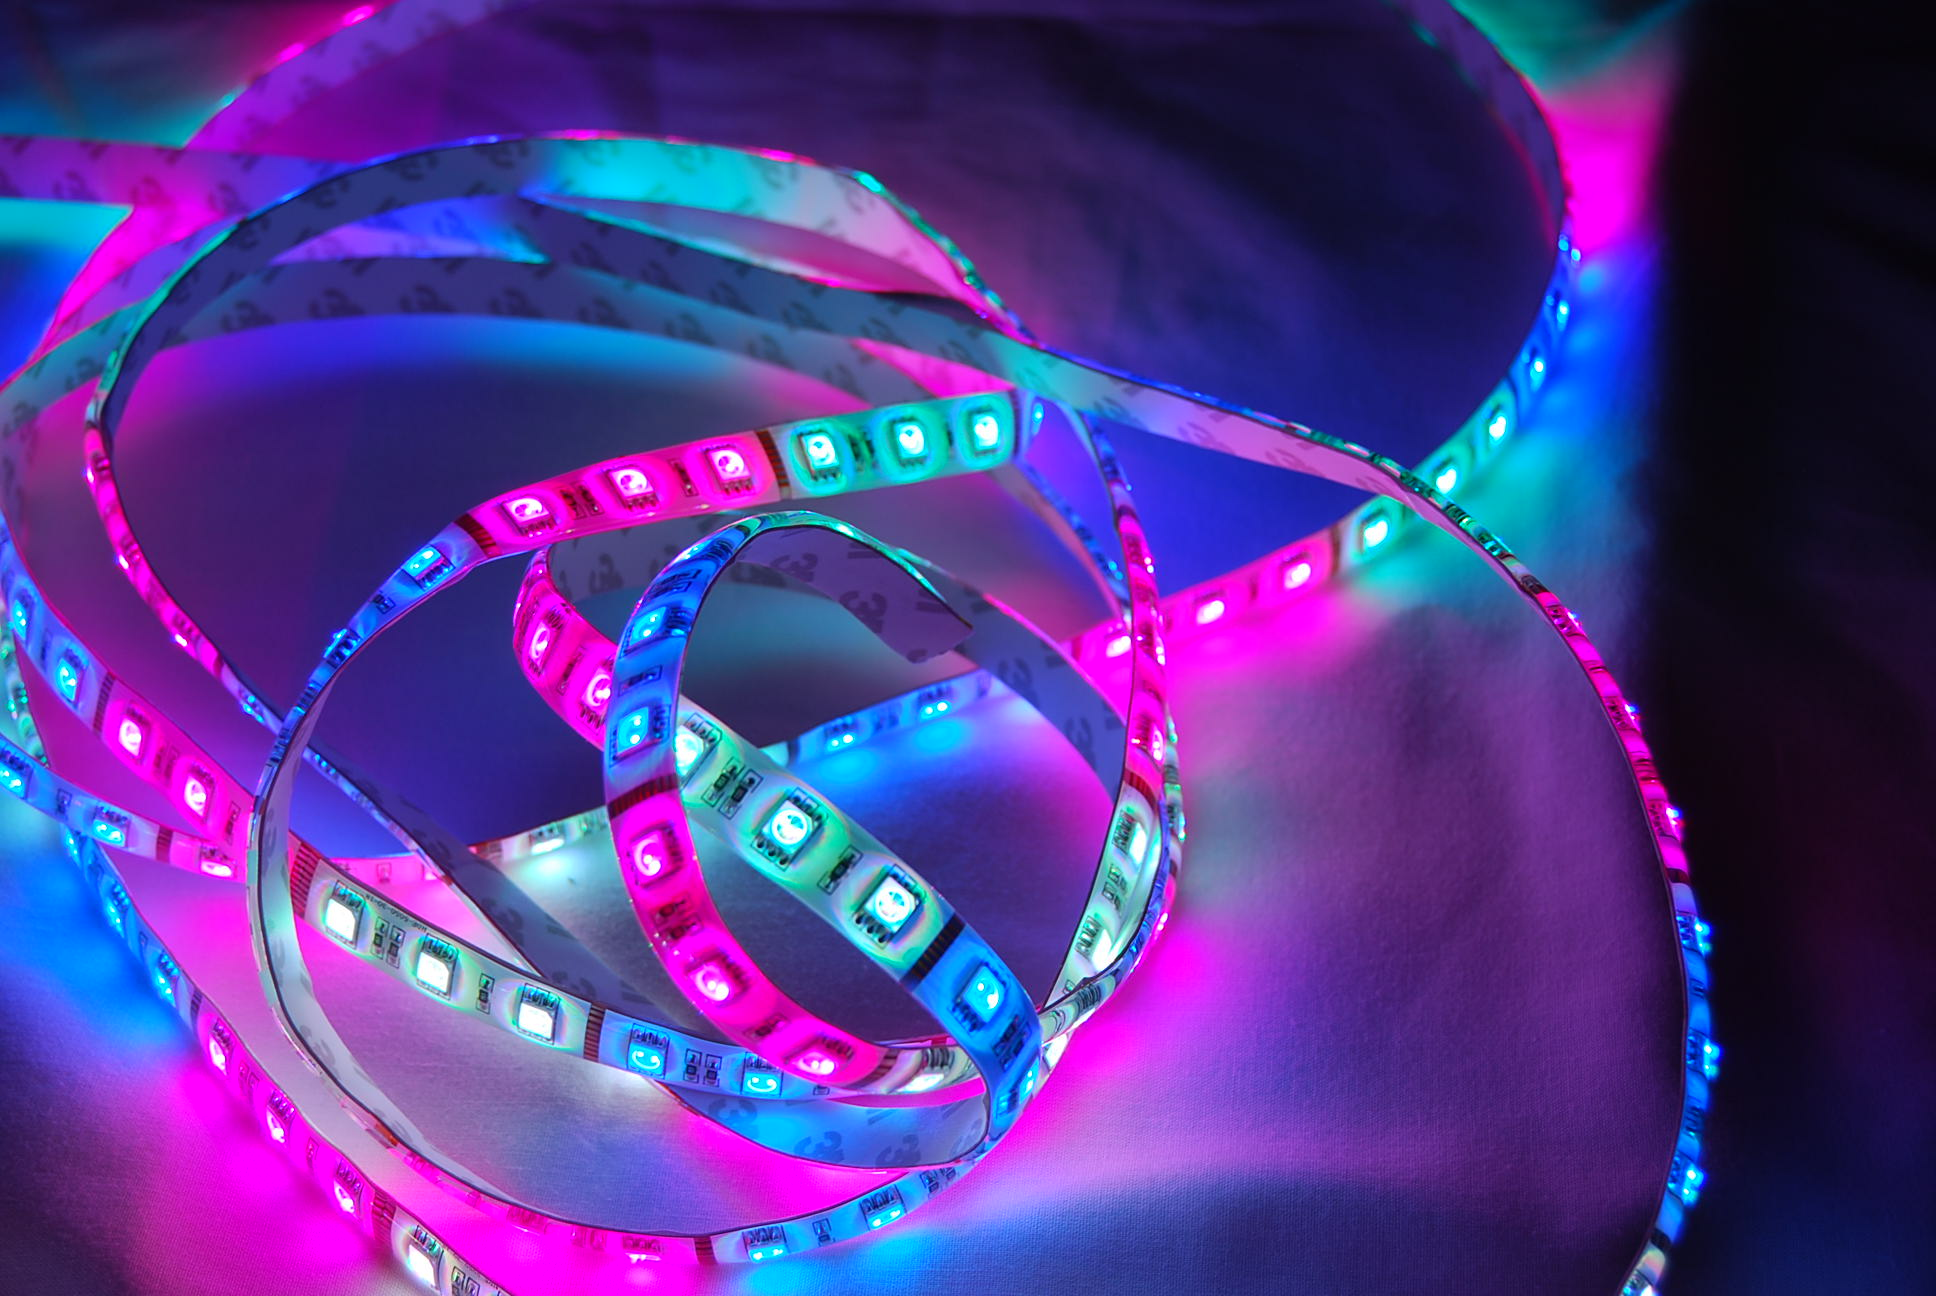 Led color changing strip lights can light up your home image image aloadofball Gallery